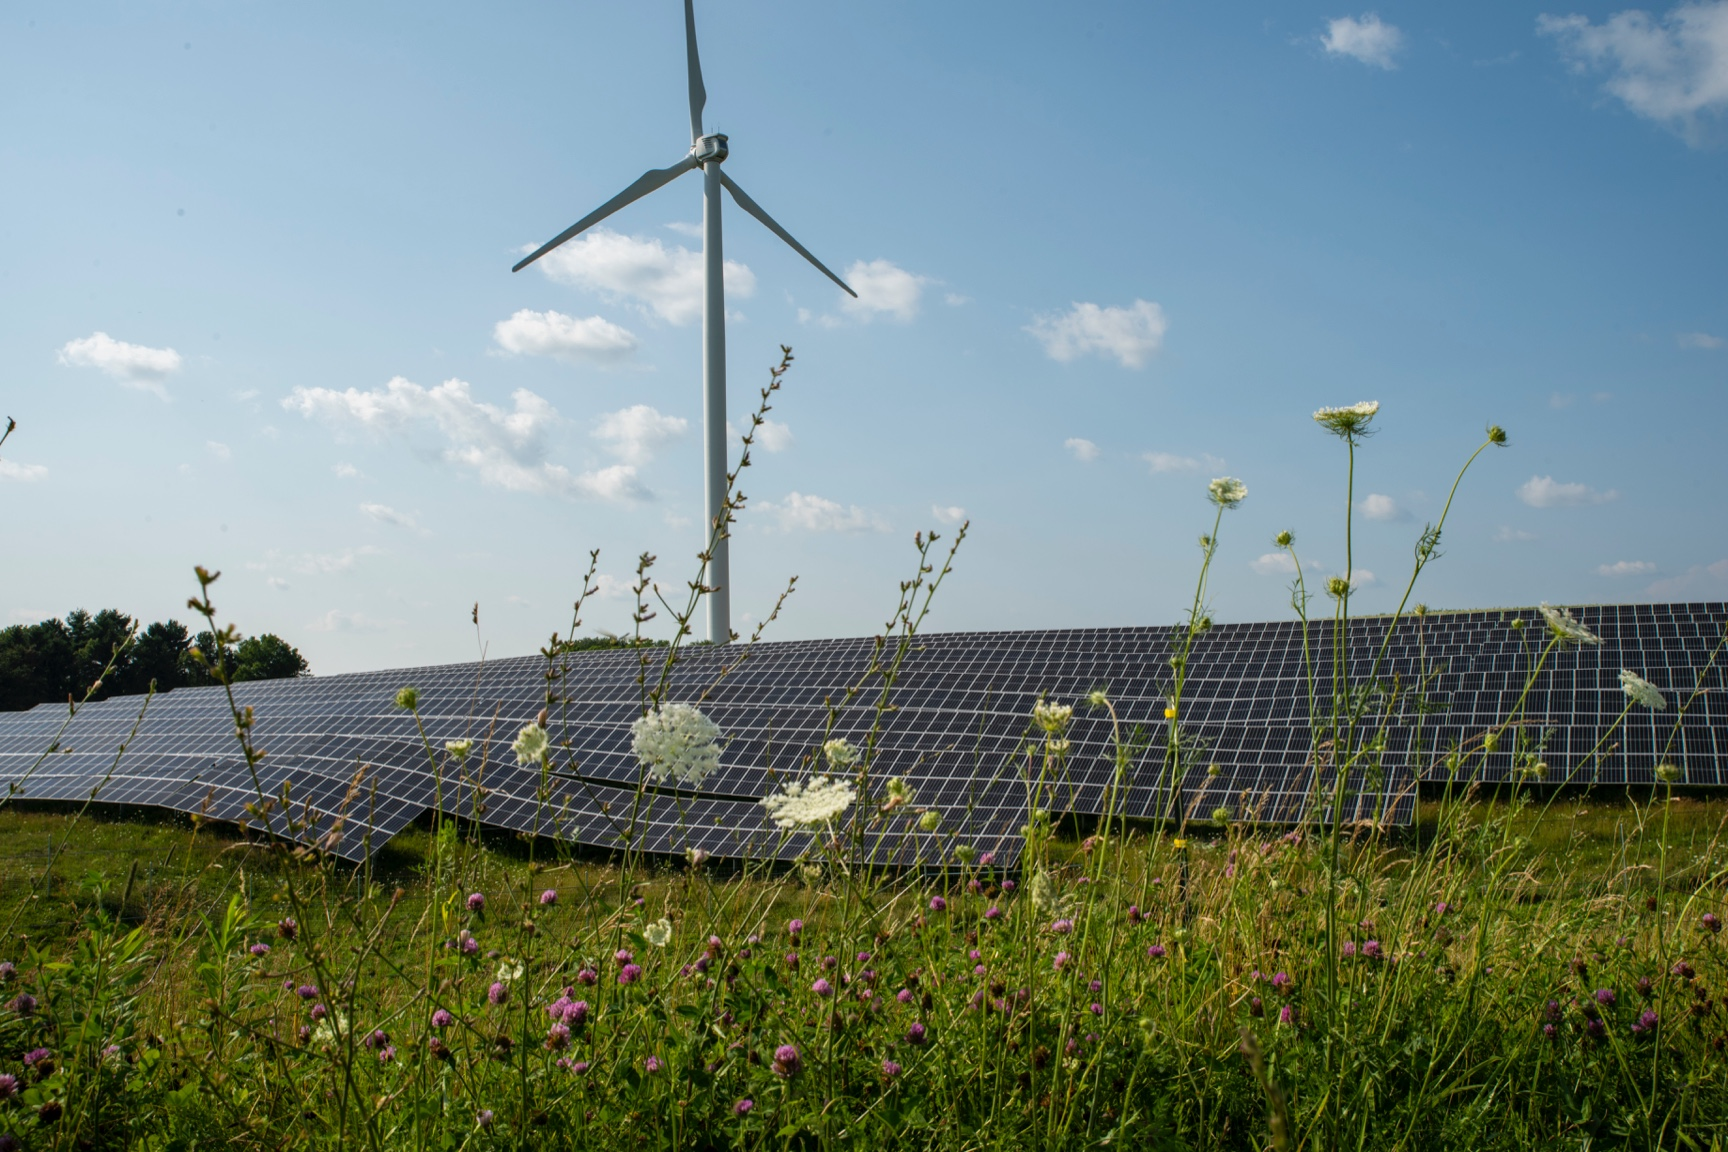 A view of the solar array with a wind turbine in the background and colorful wildflowers in the foreground.